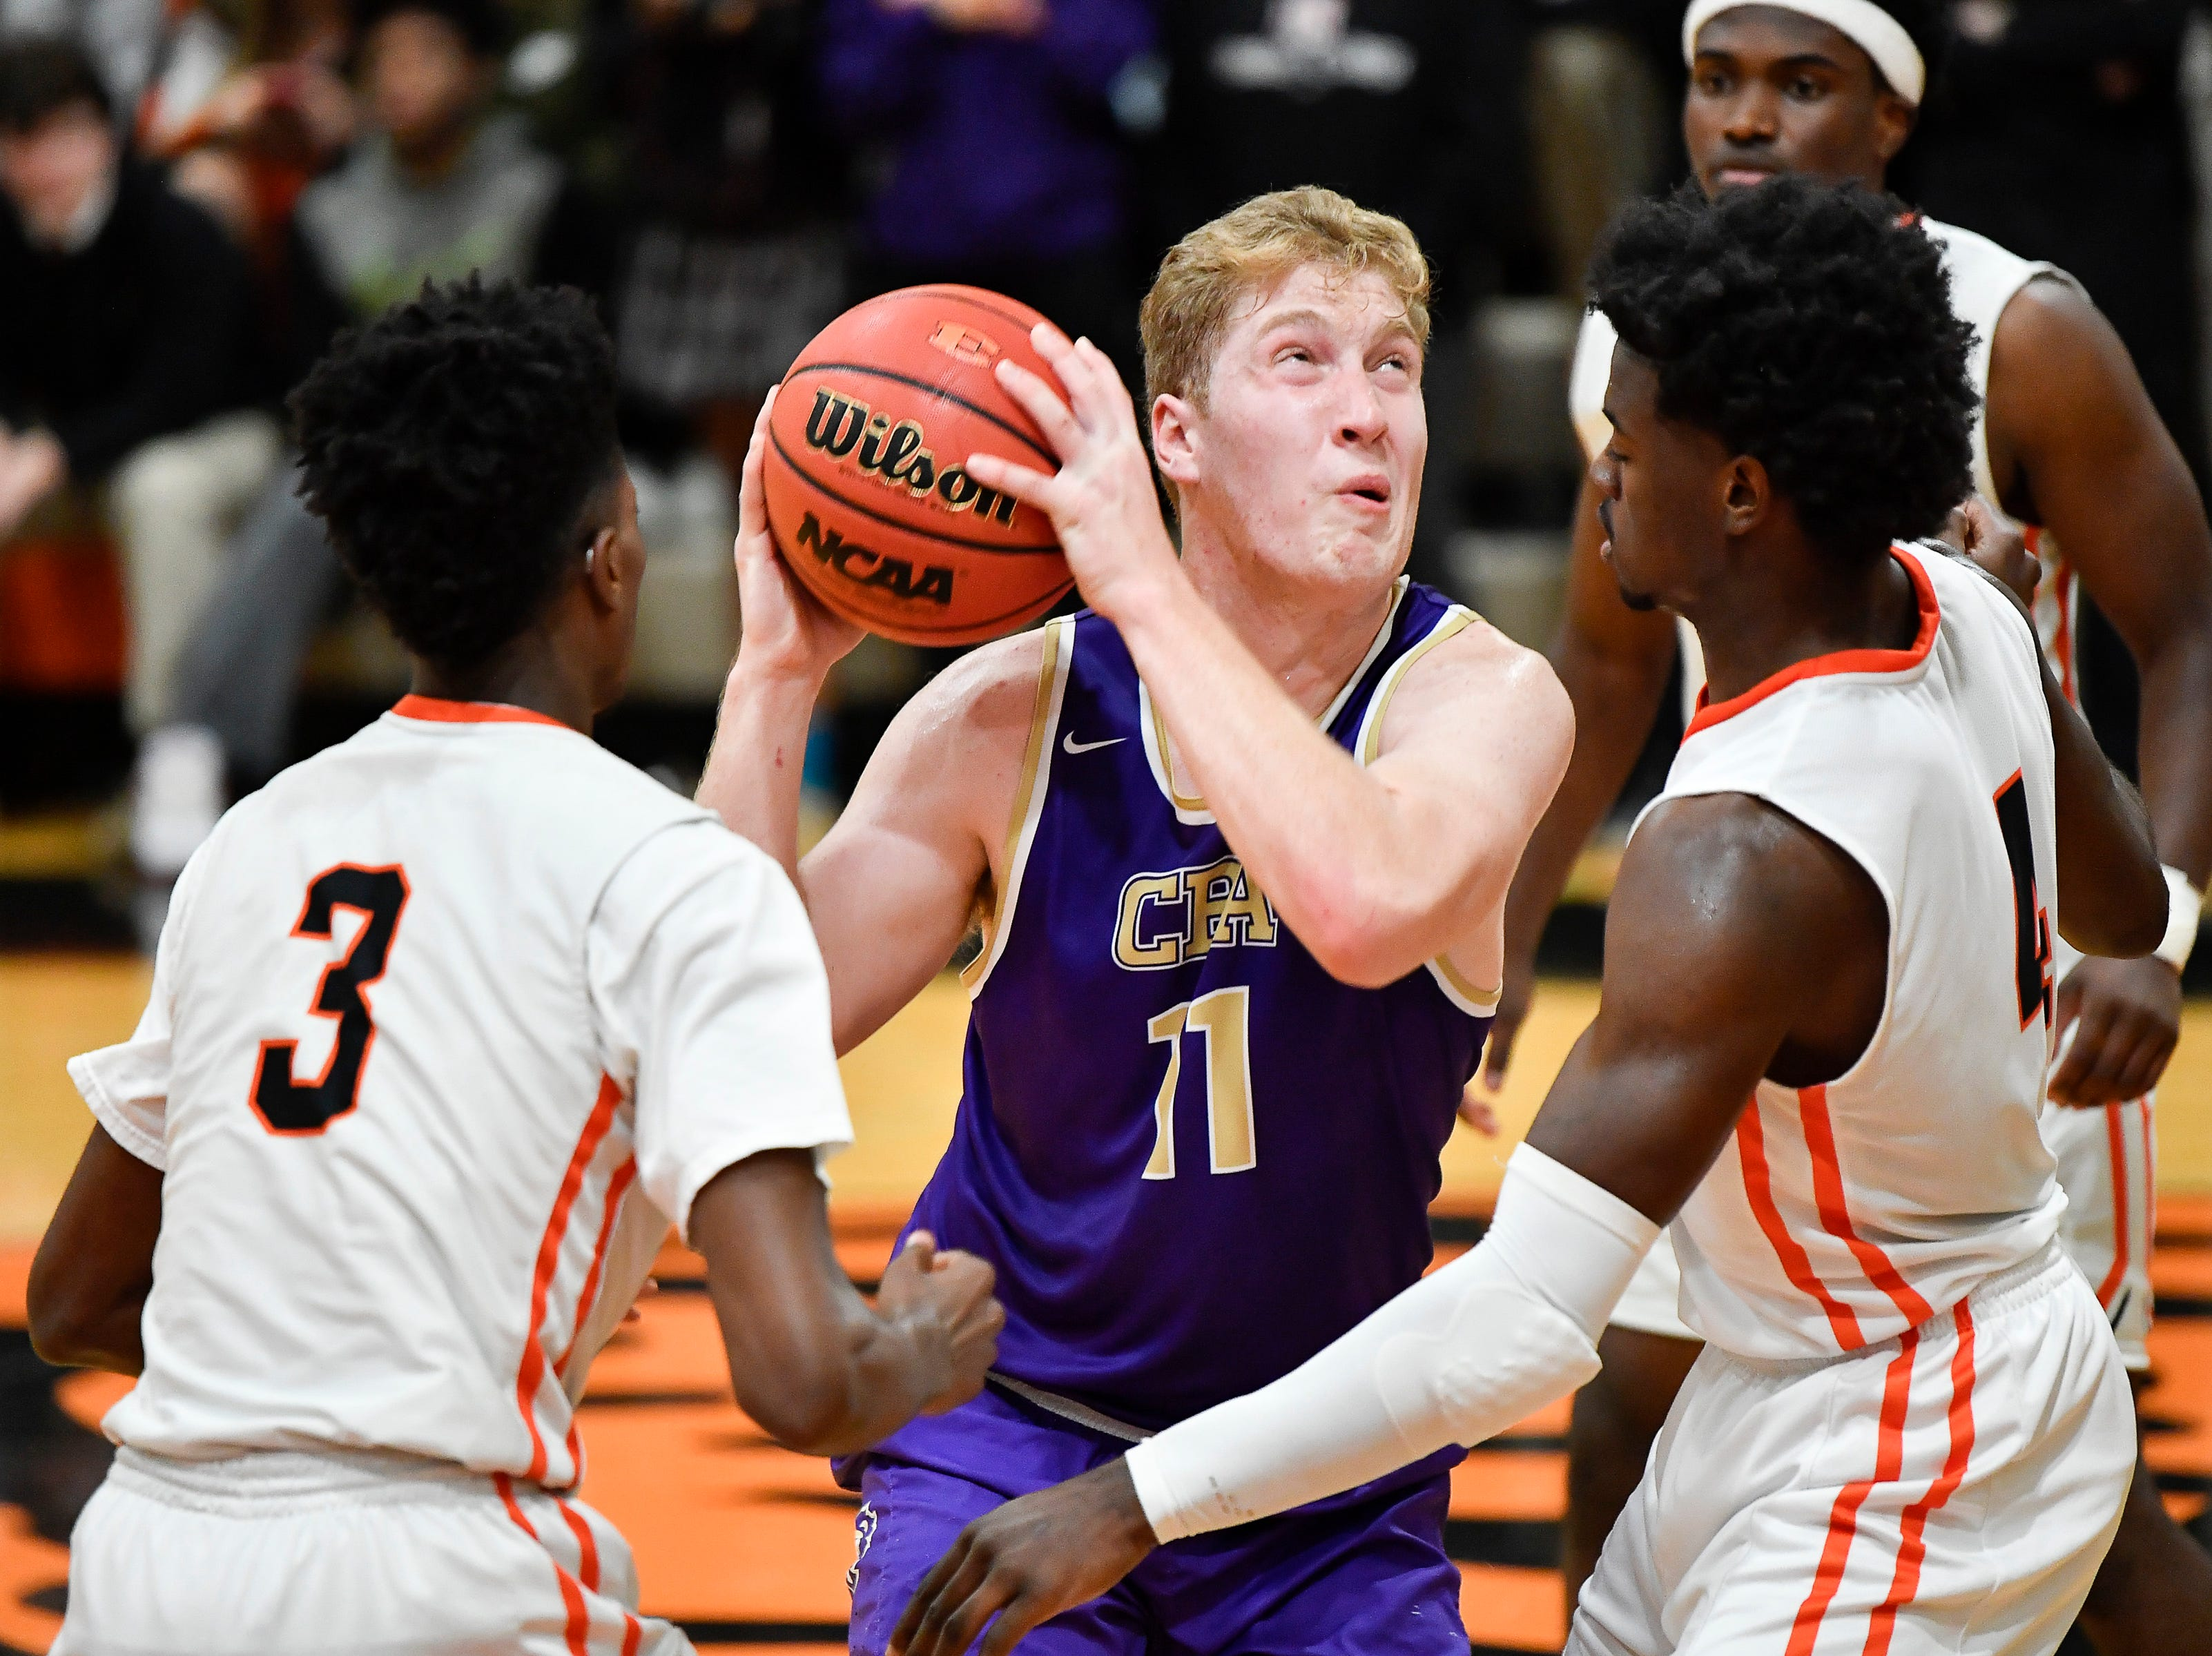 CPA's Dean Cooper (11) tries to shoot past Ensworth guard Key Collier (3) and forward Keshawn Lawrence (4) during their game at Ensworth High School Tuesday, Dec. 11, 2018, in Nashville, Tenn.